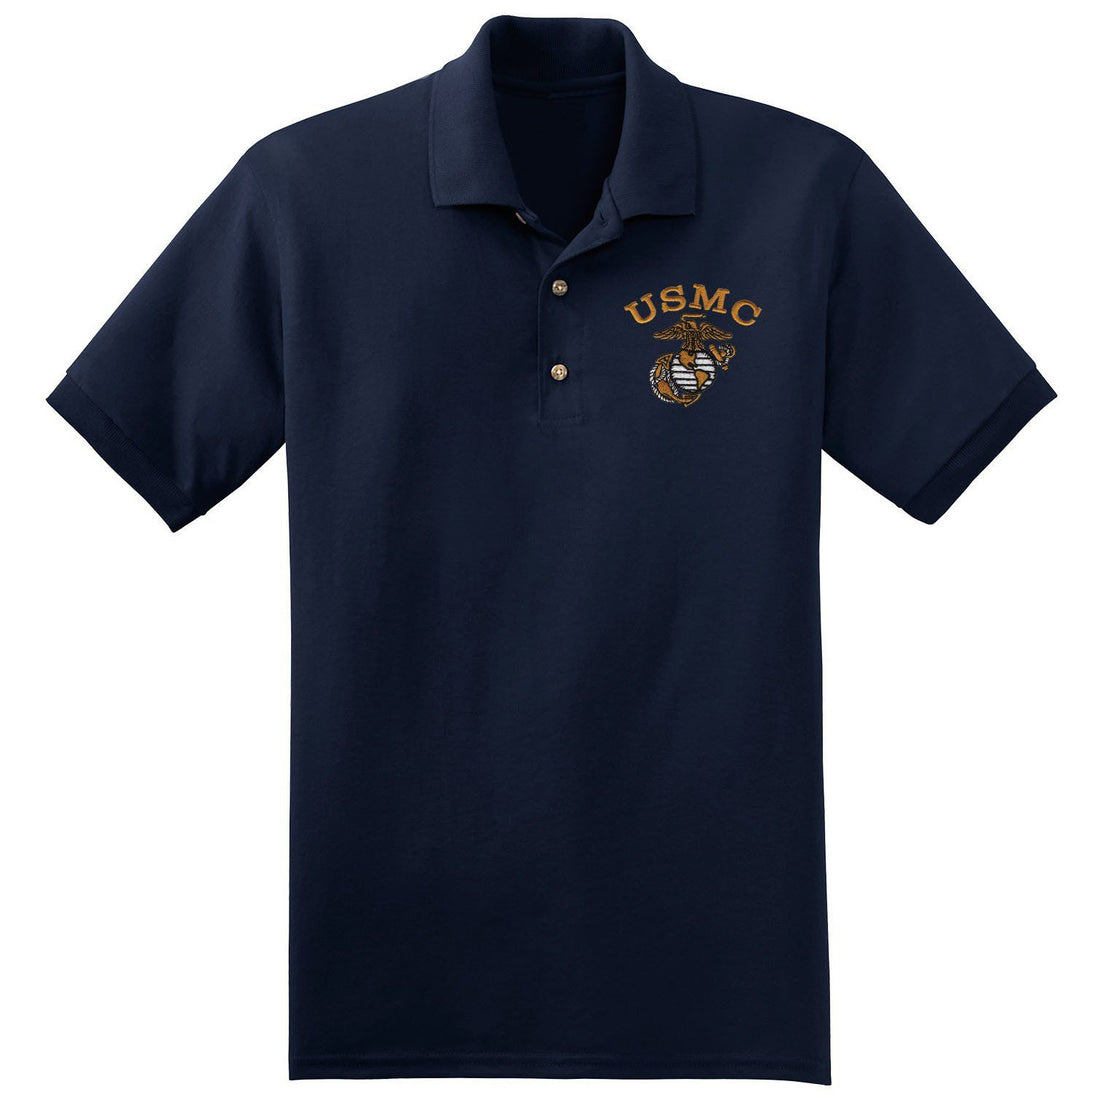 USMC Embroidered Polo (MULTIPLE COLORS) - Marine Corps Direct  - 2